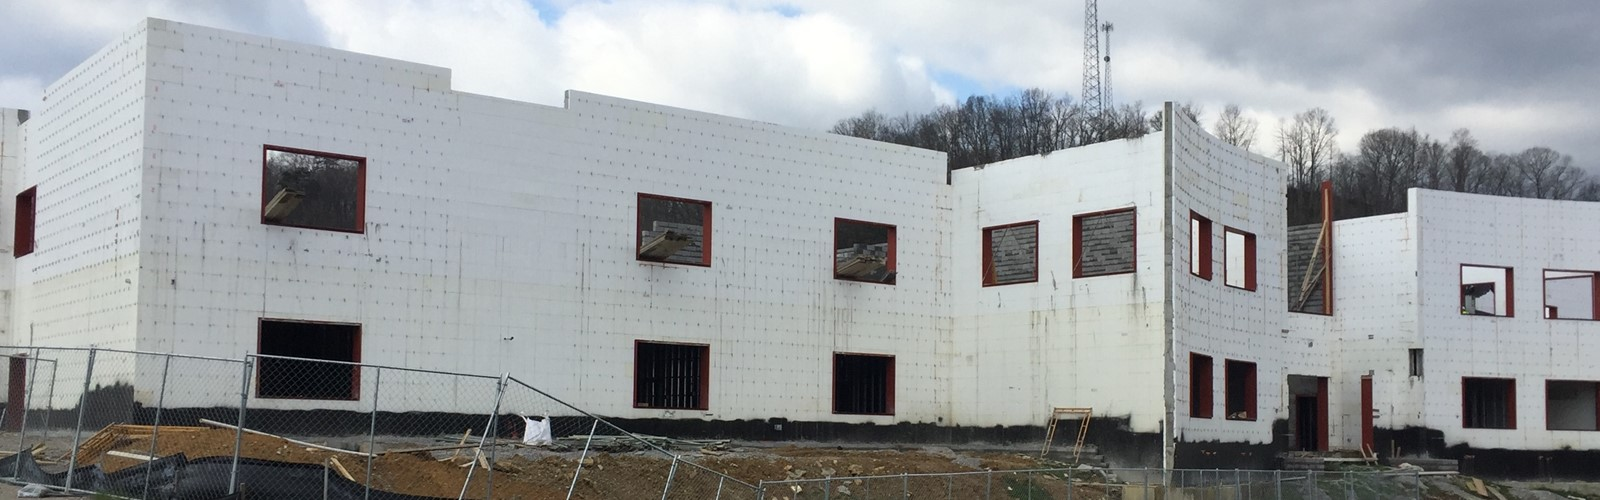 New High School Construction Left Side Front.  2 Story nestled against the hill side.